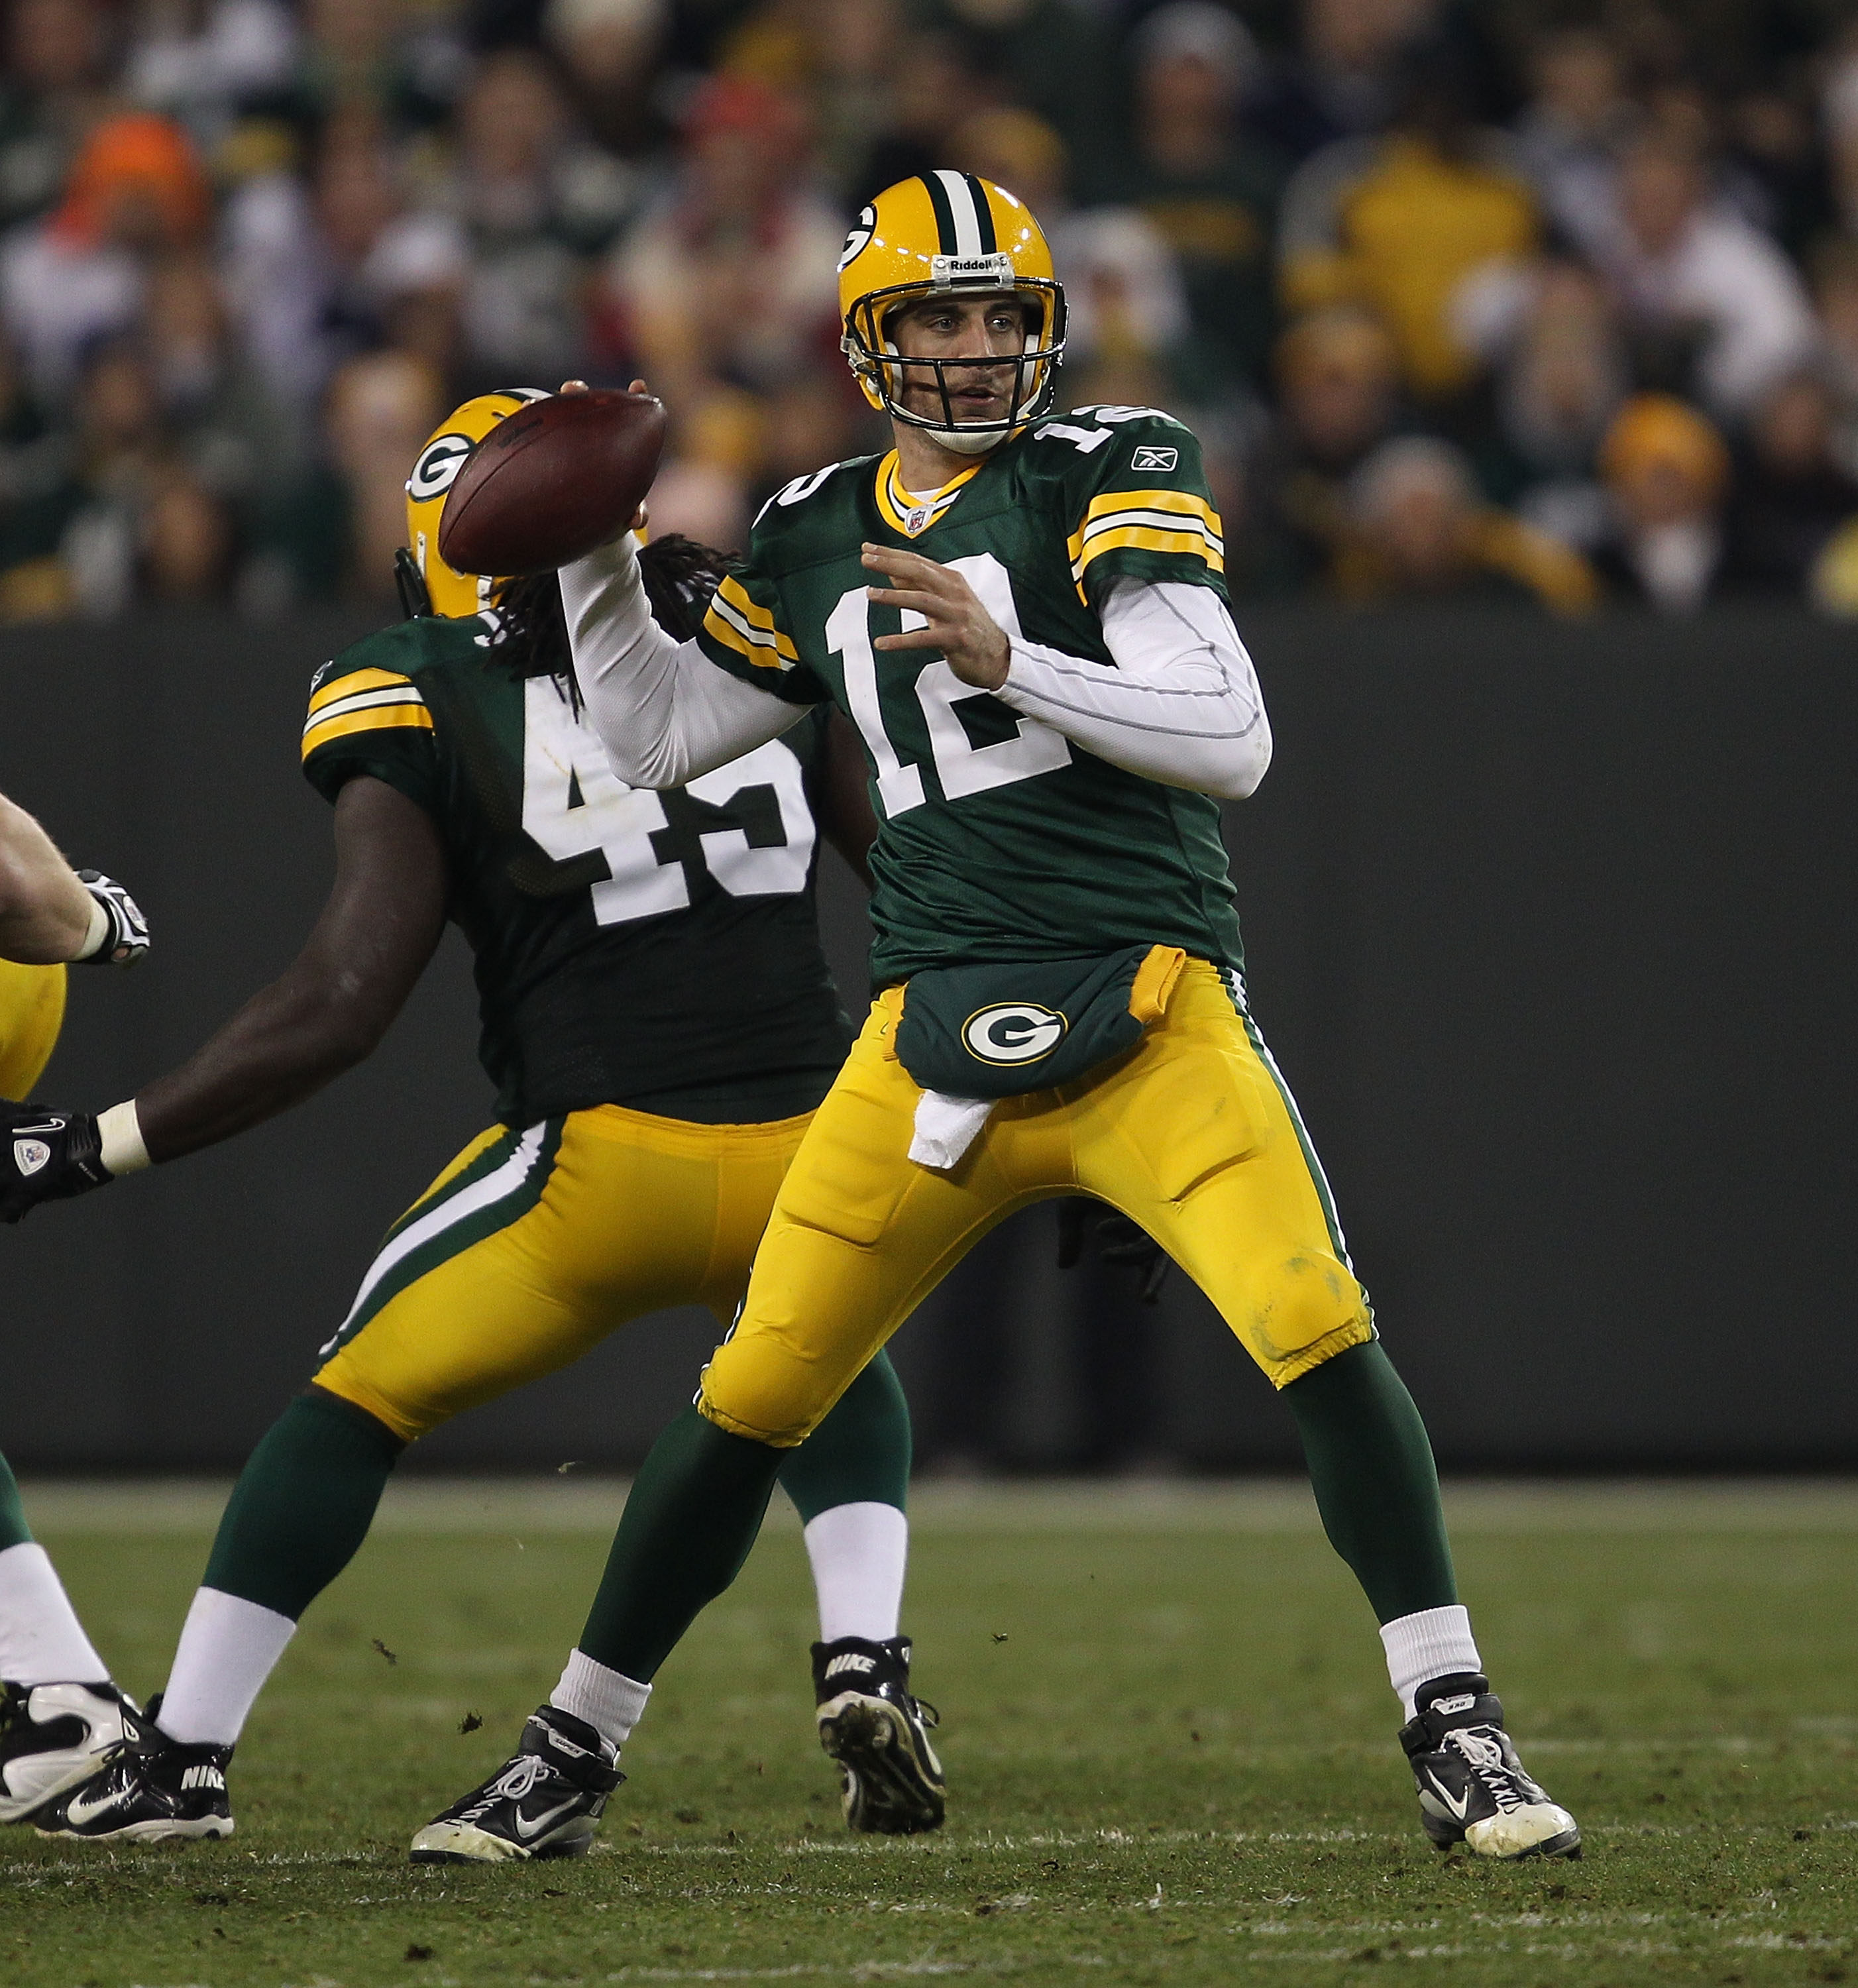 GREEN BAY, WI - NOVEMBER 07: Aaron Rodgers #12 of the Green Bay Packers throws a pass against the Dallas Cowboys at Lambeau Field on November 7, 2010 in Green Bay, Wisconsin. The Packers defeated the Cowboys 45-7. (Photo by Jonathan Daniel/Getty Images)